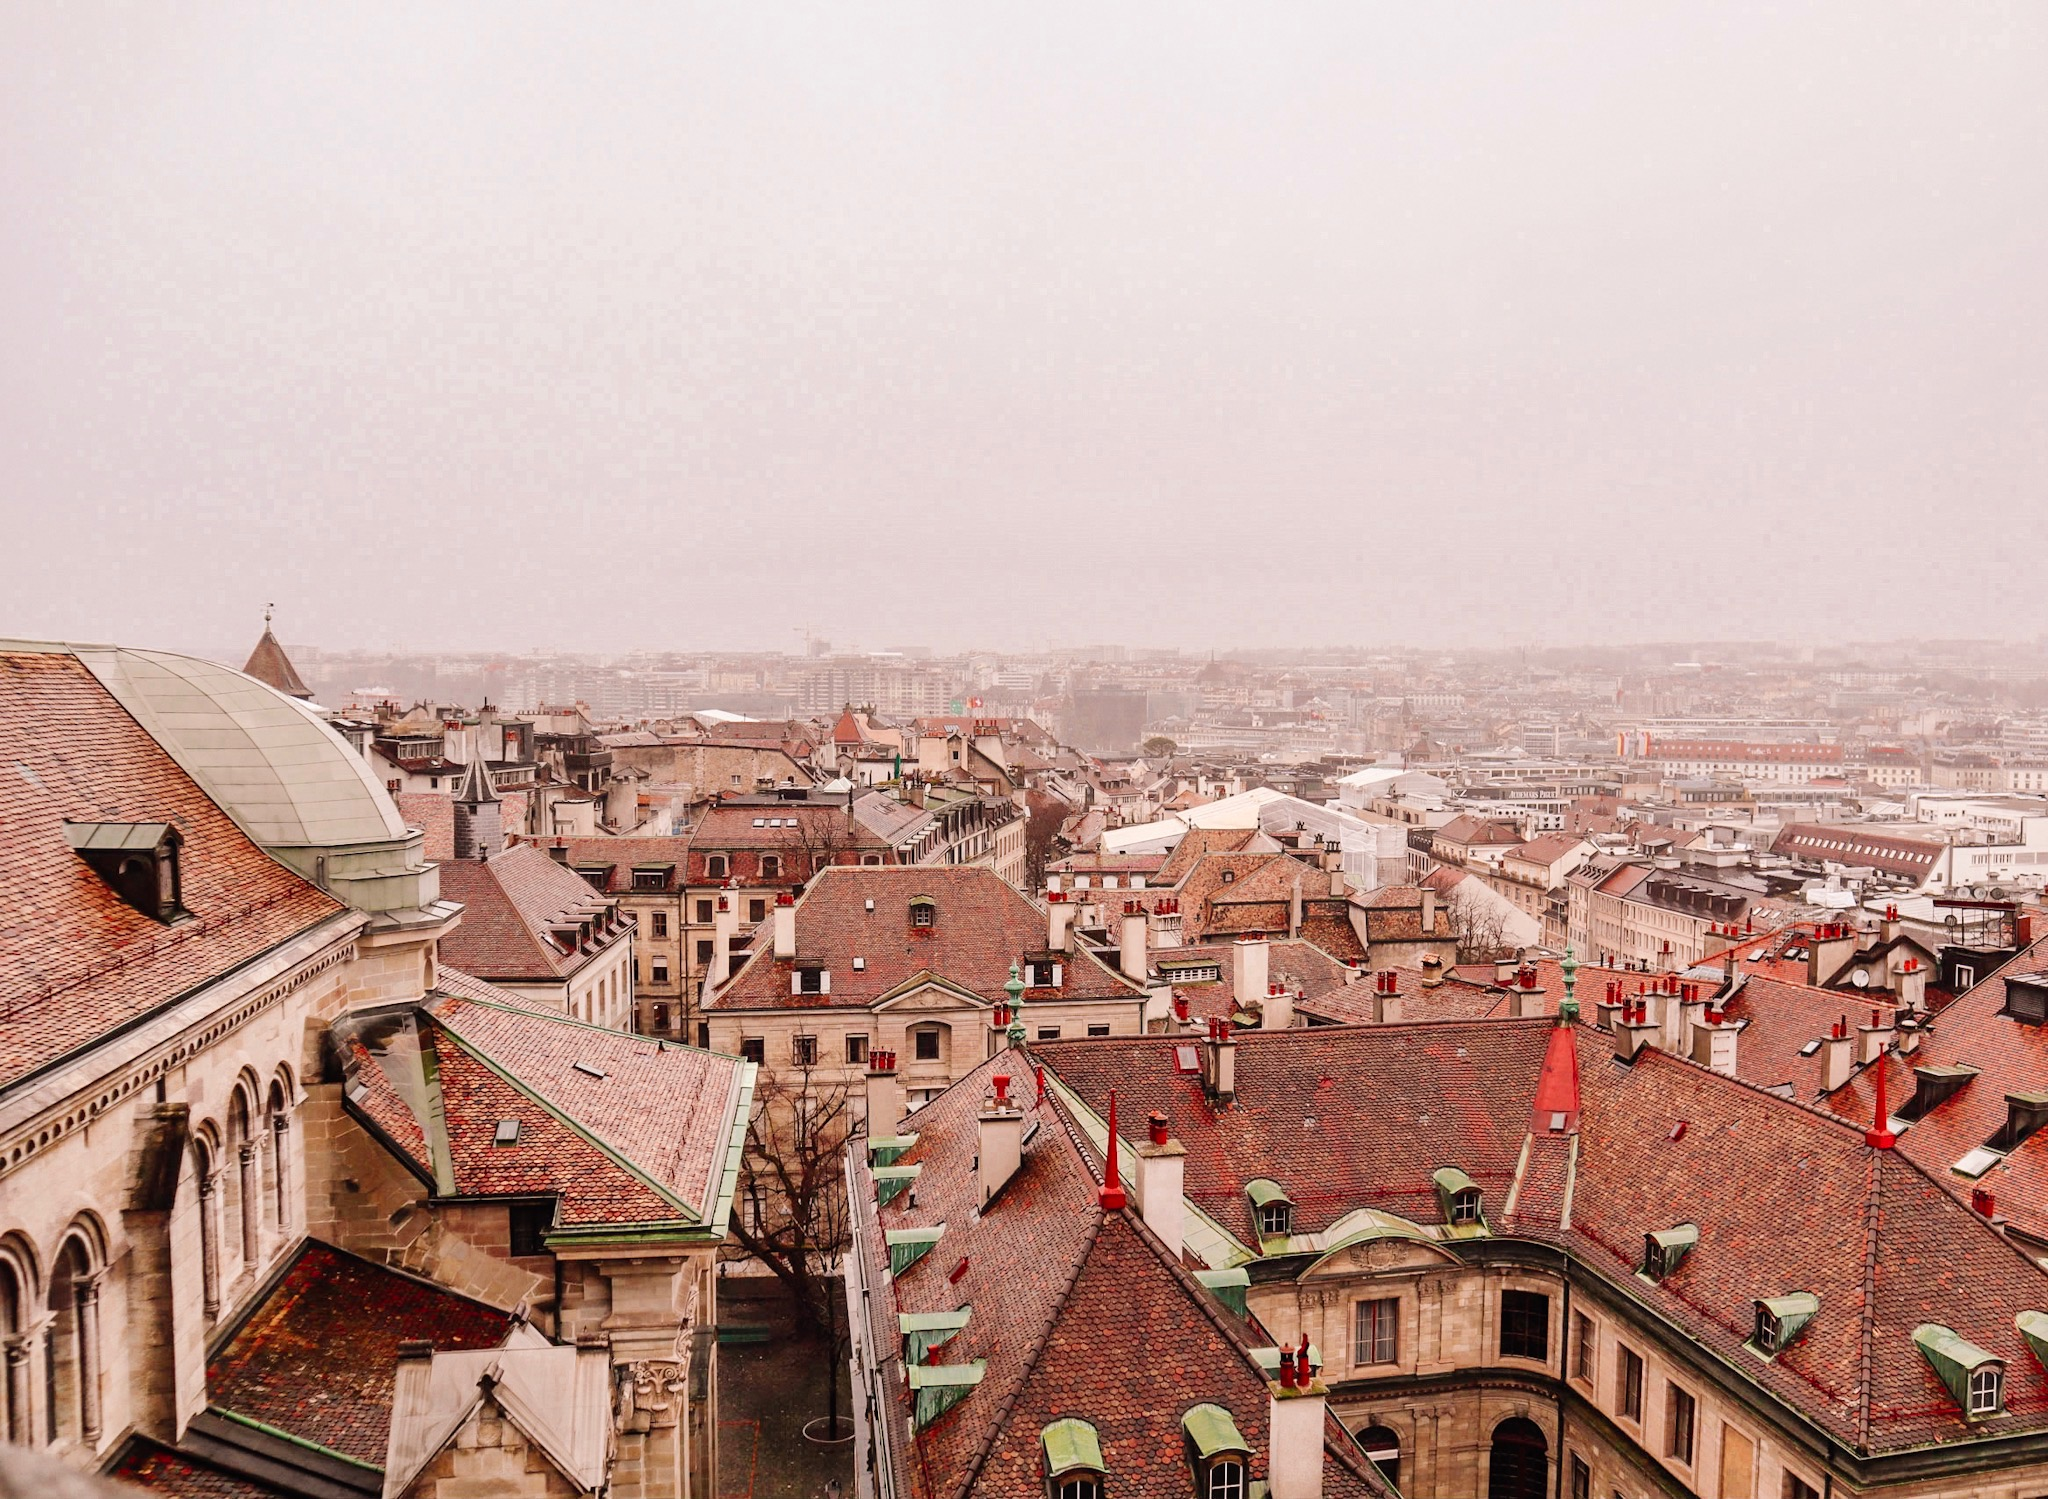 View from the Tower of the St. Pierre Cathedral